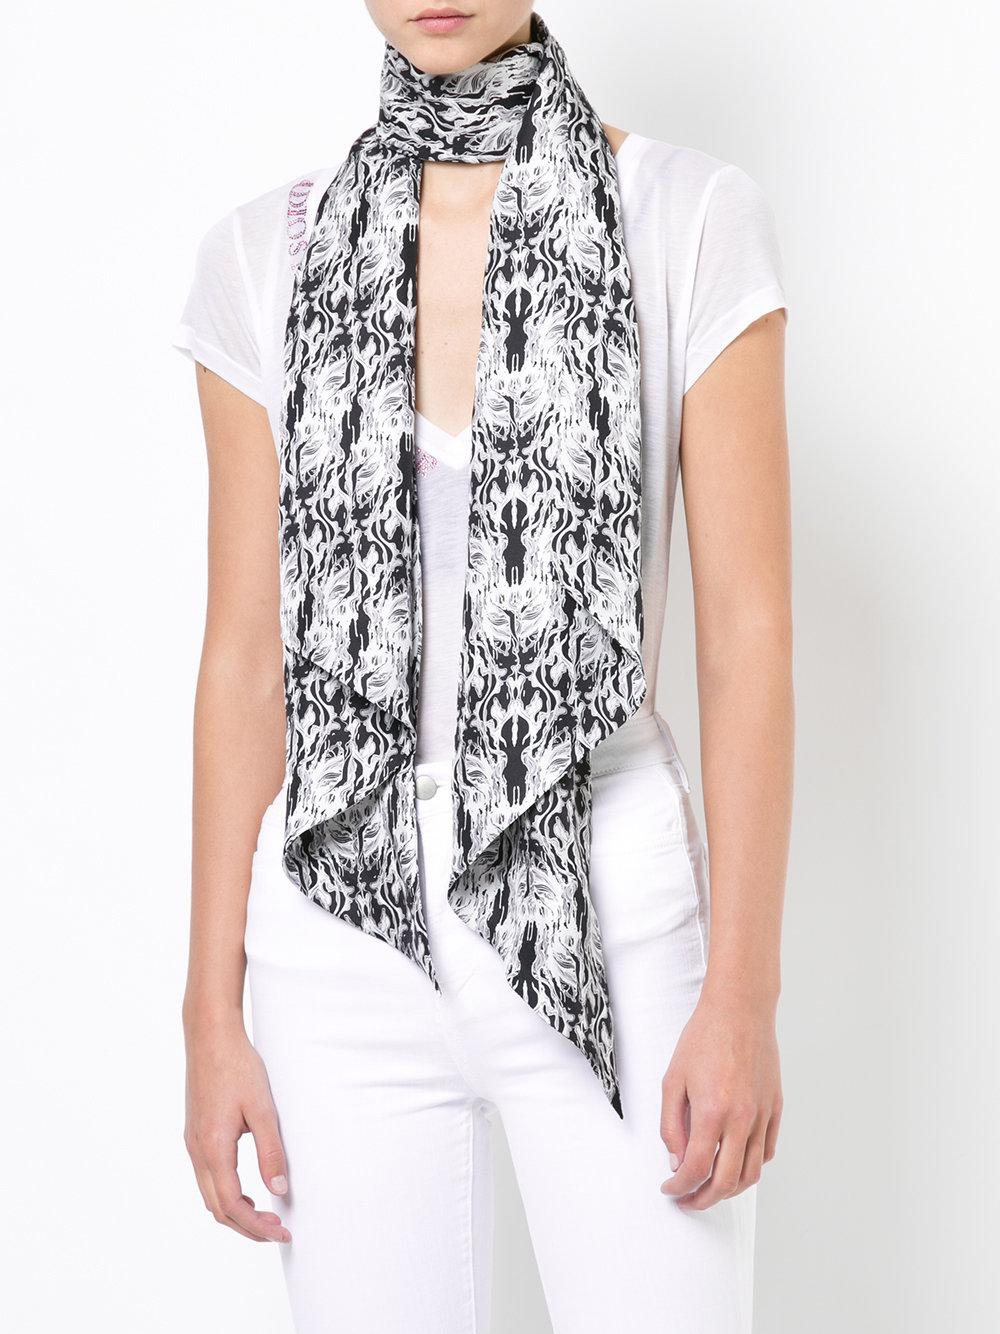 Metamorphosis printed scarf - Black Thomas Wylde wxgAjF